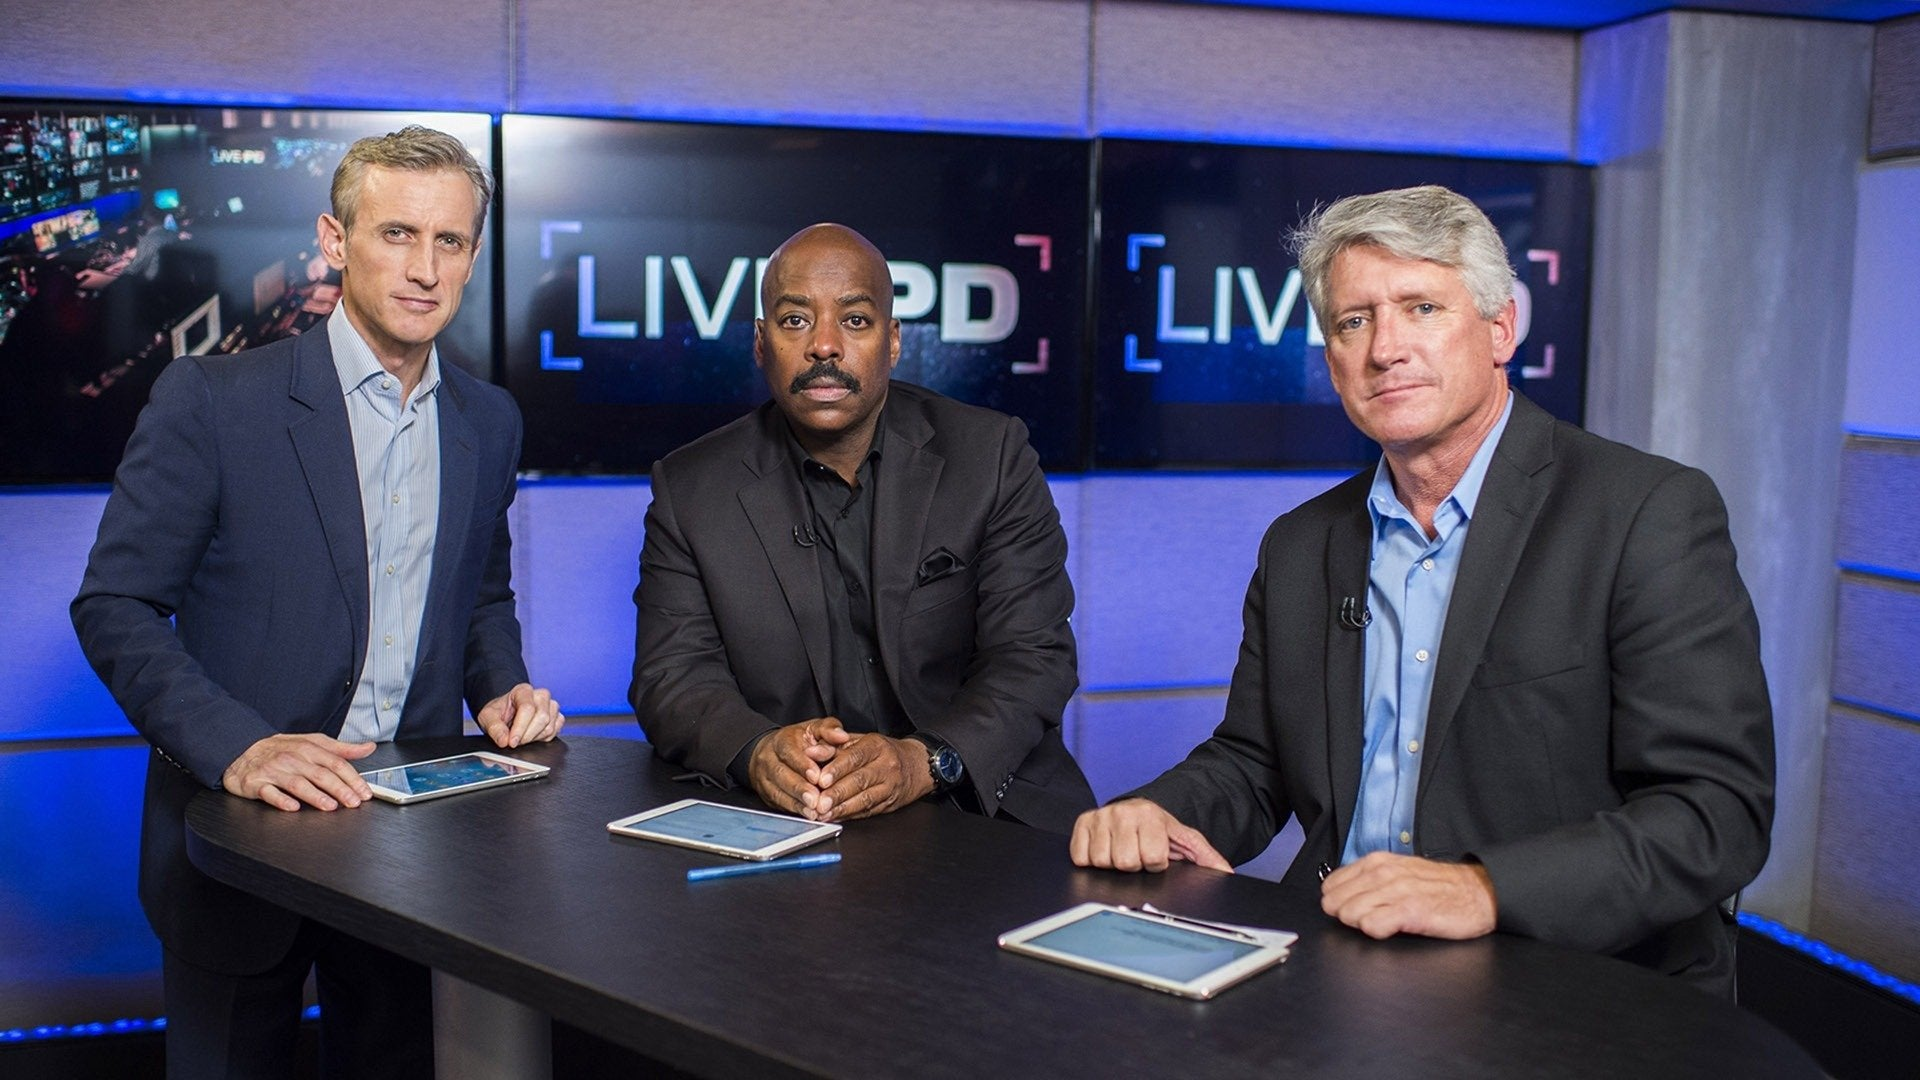 Live PD: Roll Call